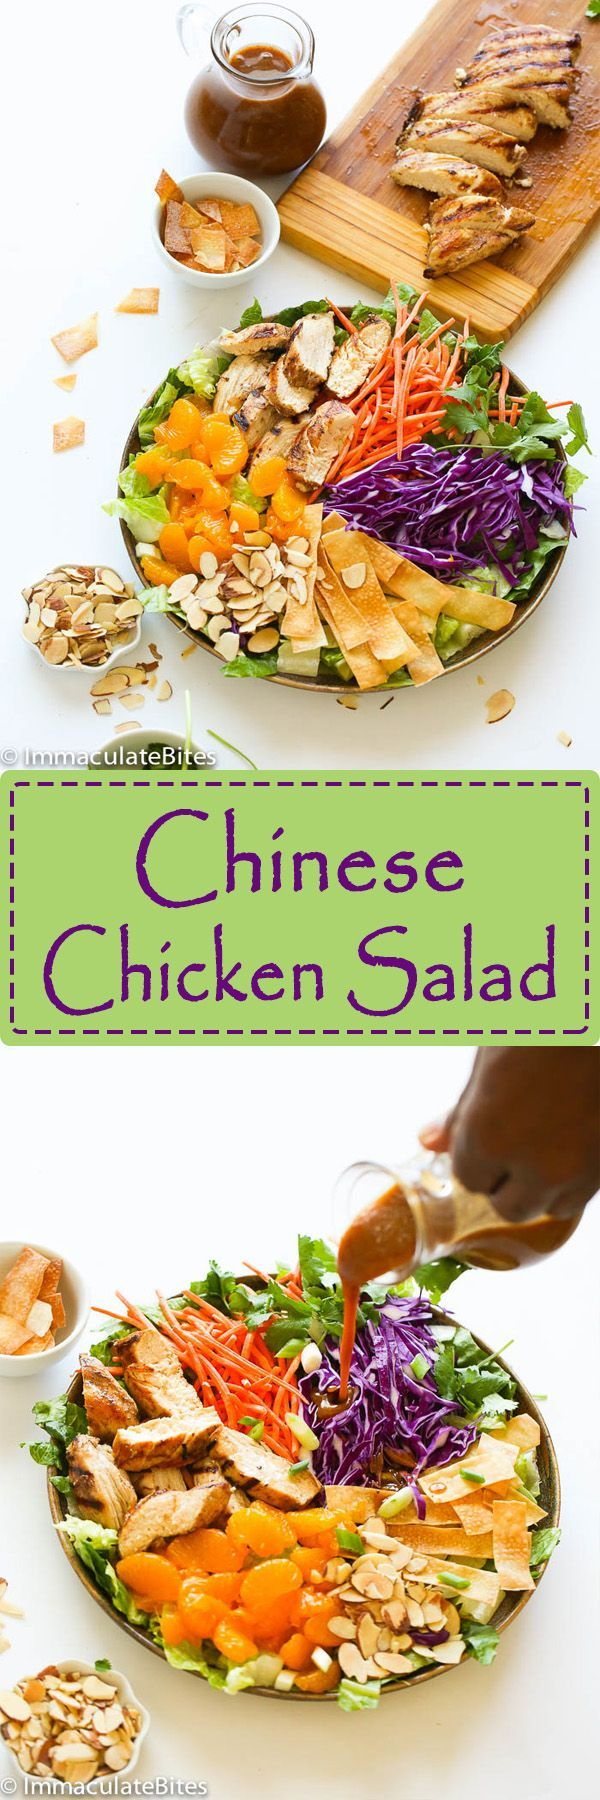 Homemade Chinese chicken salad with a lighter and healthier  touch. Crispy crunchy  serve  with a lip smackingly delicious Almond dressing. The following recipe, is my  lightened up version of  Chinese chicken salad served at a restaurant I used to work at . A very simple and popular dish – a big seller for the restaurant and …